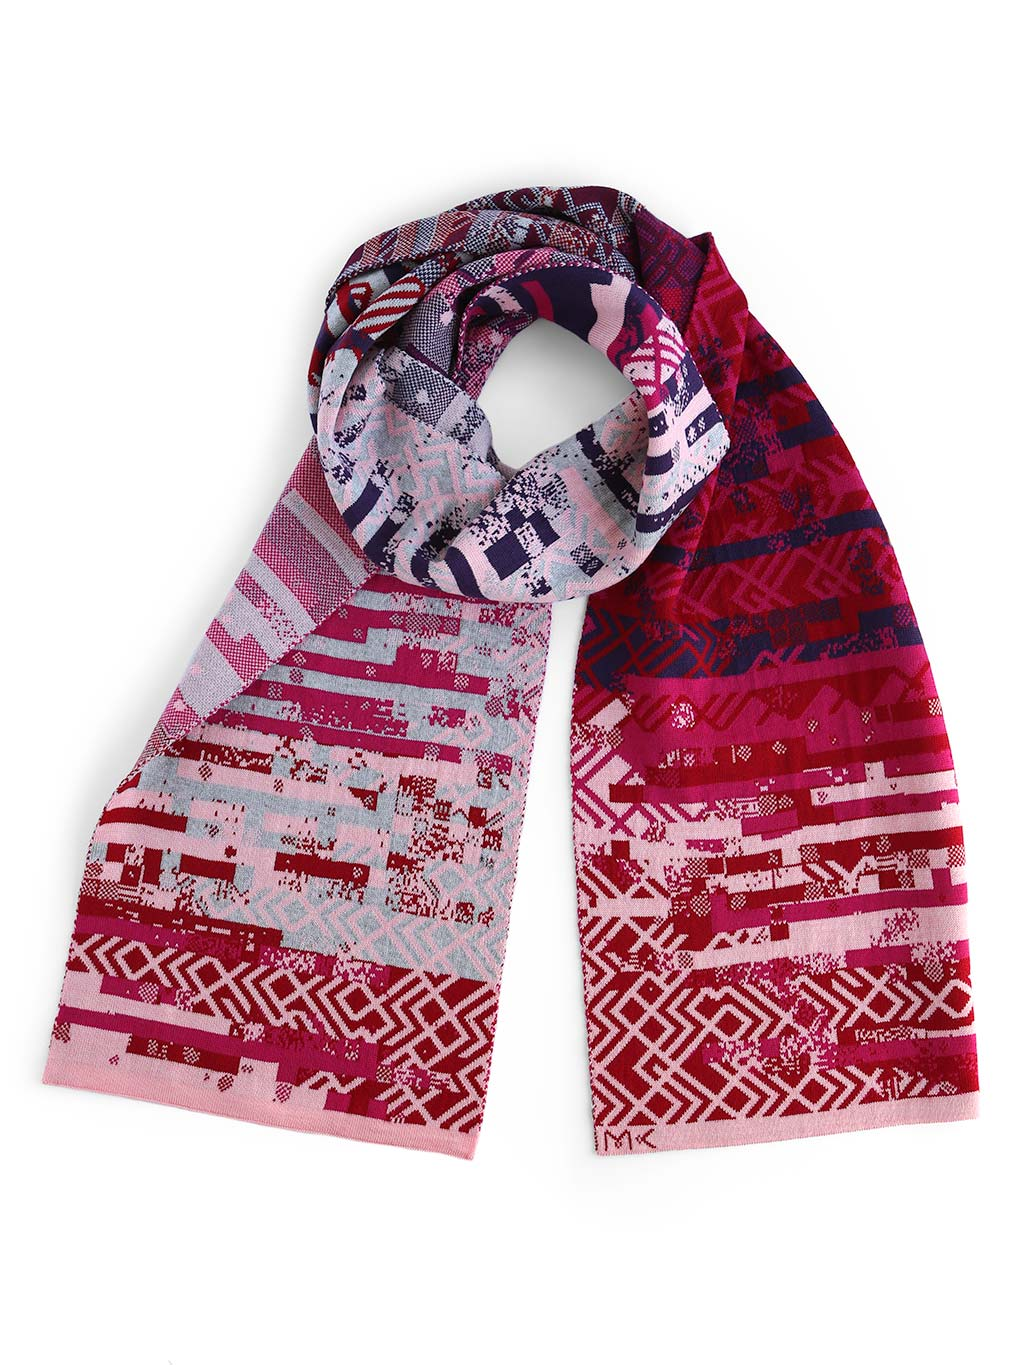 Glitch scarf with a knitted glitched pattern inspired by Art deco design style. It's knitted in extra fine Italian merino wool. Scarf with red and pink colour shades.